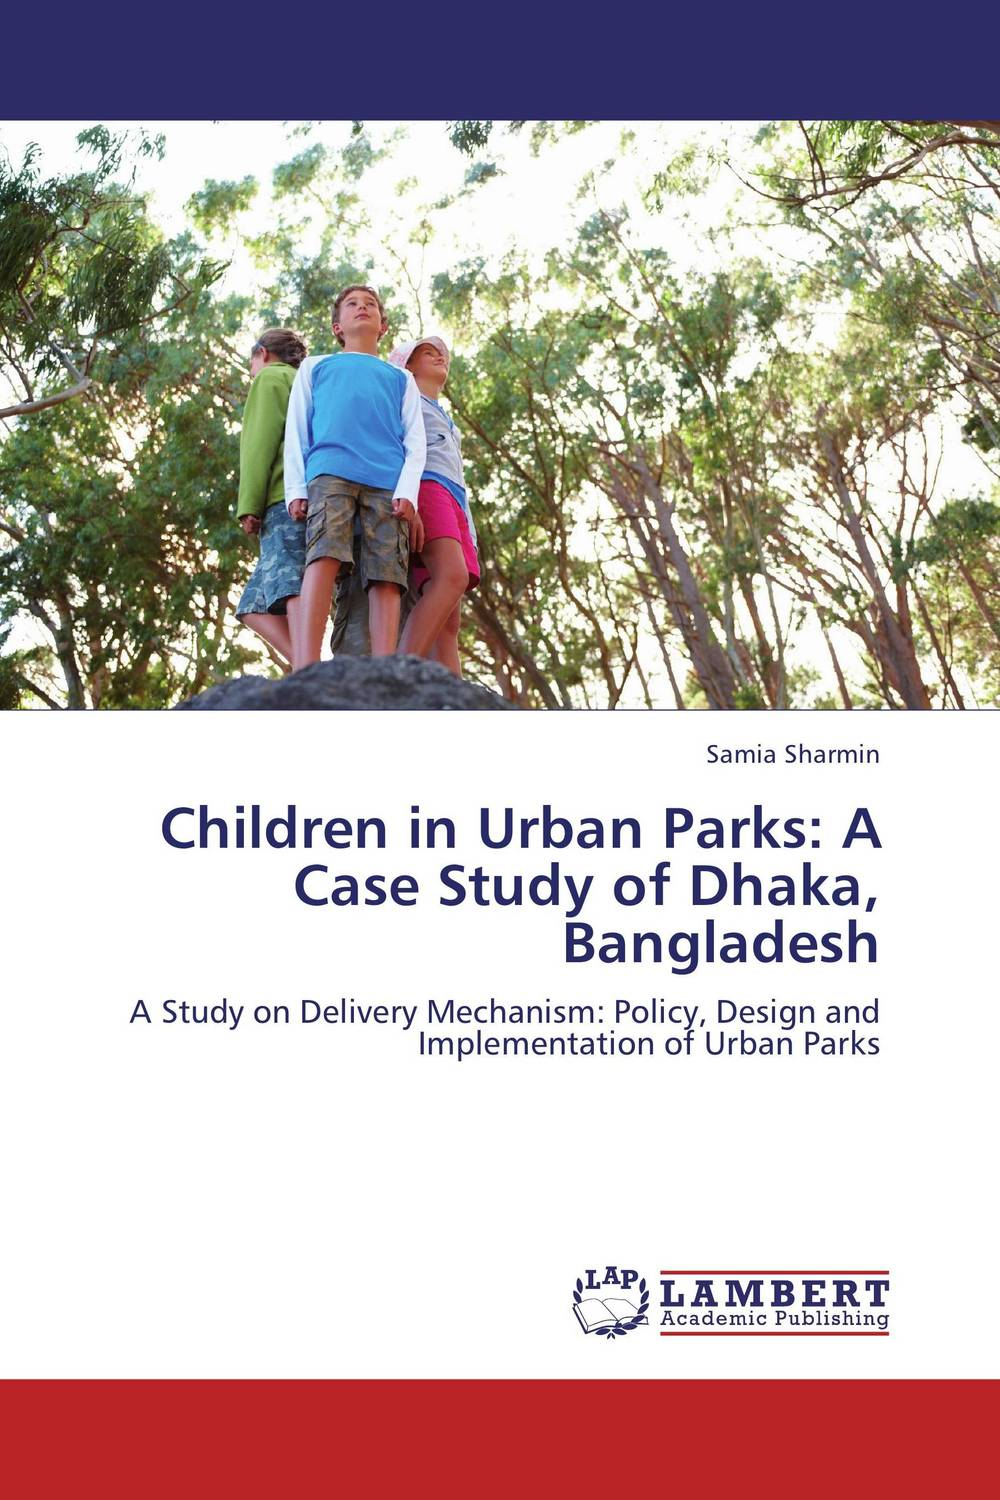 Children in Urban Parks: A Case Study of Dhaka, Bangladesh samia sharmin children in urban parks a case study of dhaka bangladesh